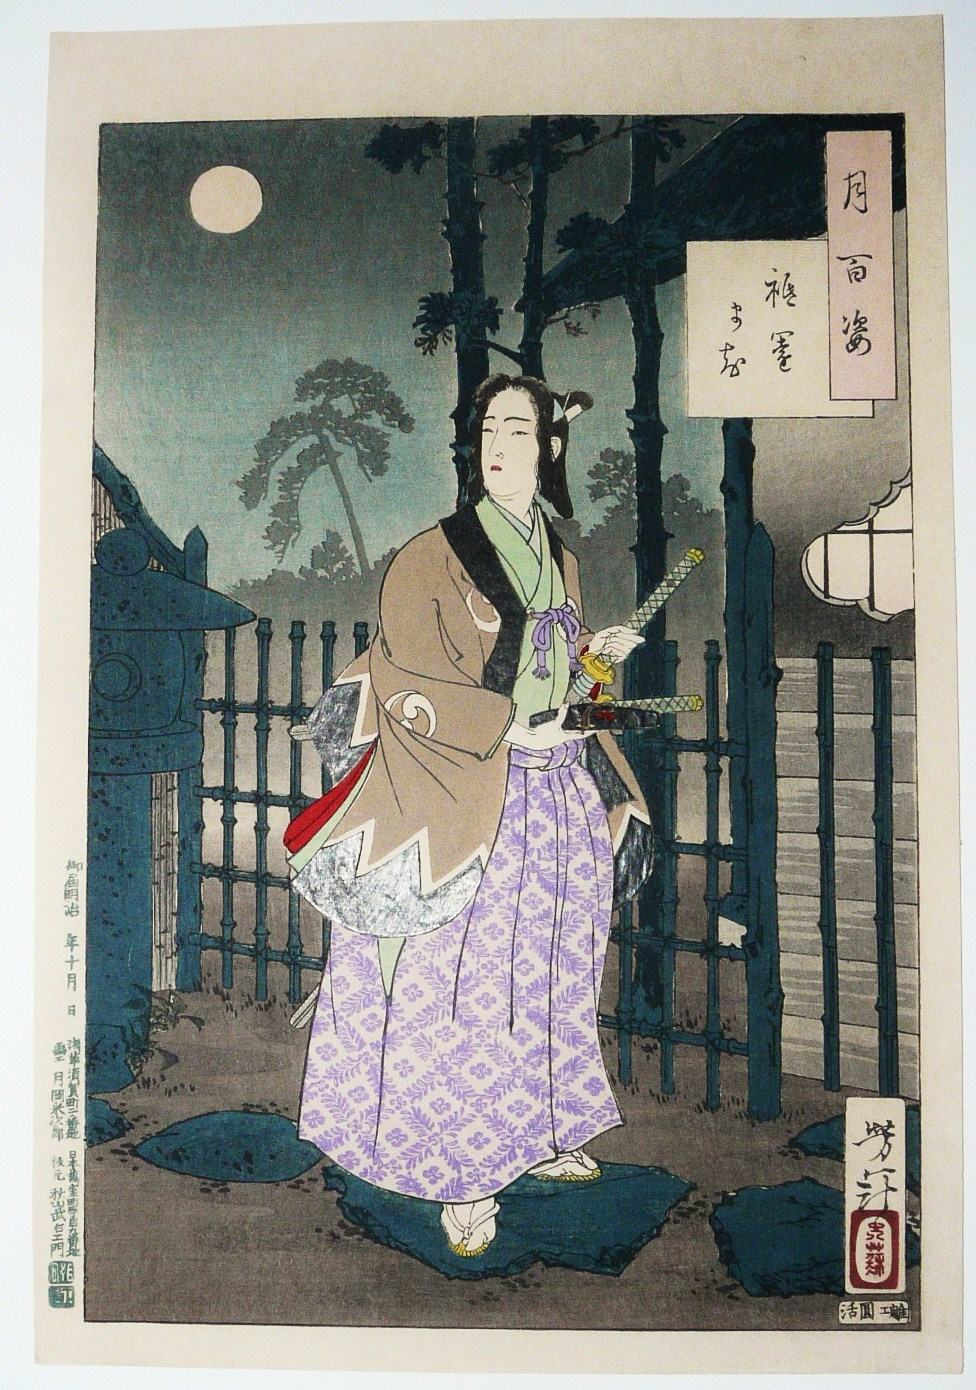 TAISO YOSHITOSHI: #P4040 GION MACHI - THE GION DISTRICT FROM 100 ASPECTS OF THE MOON SERIES